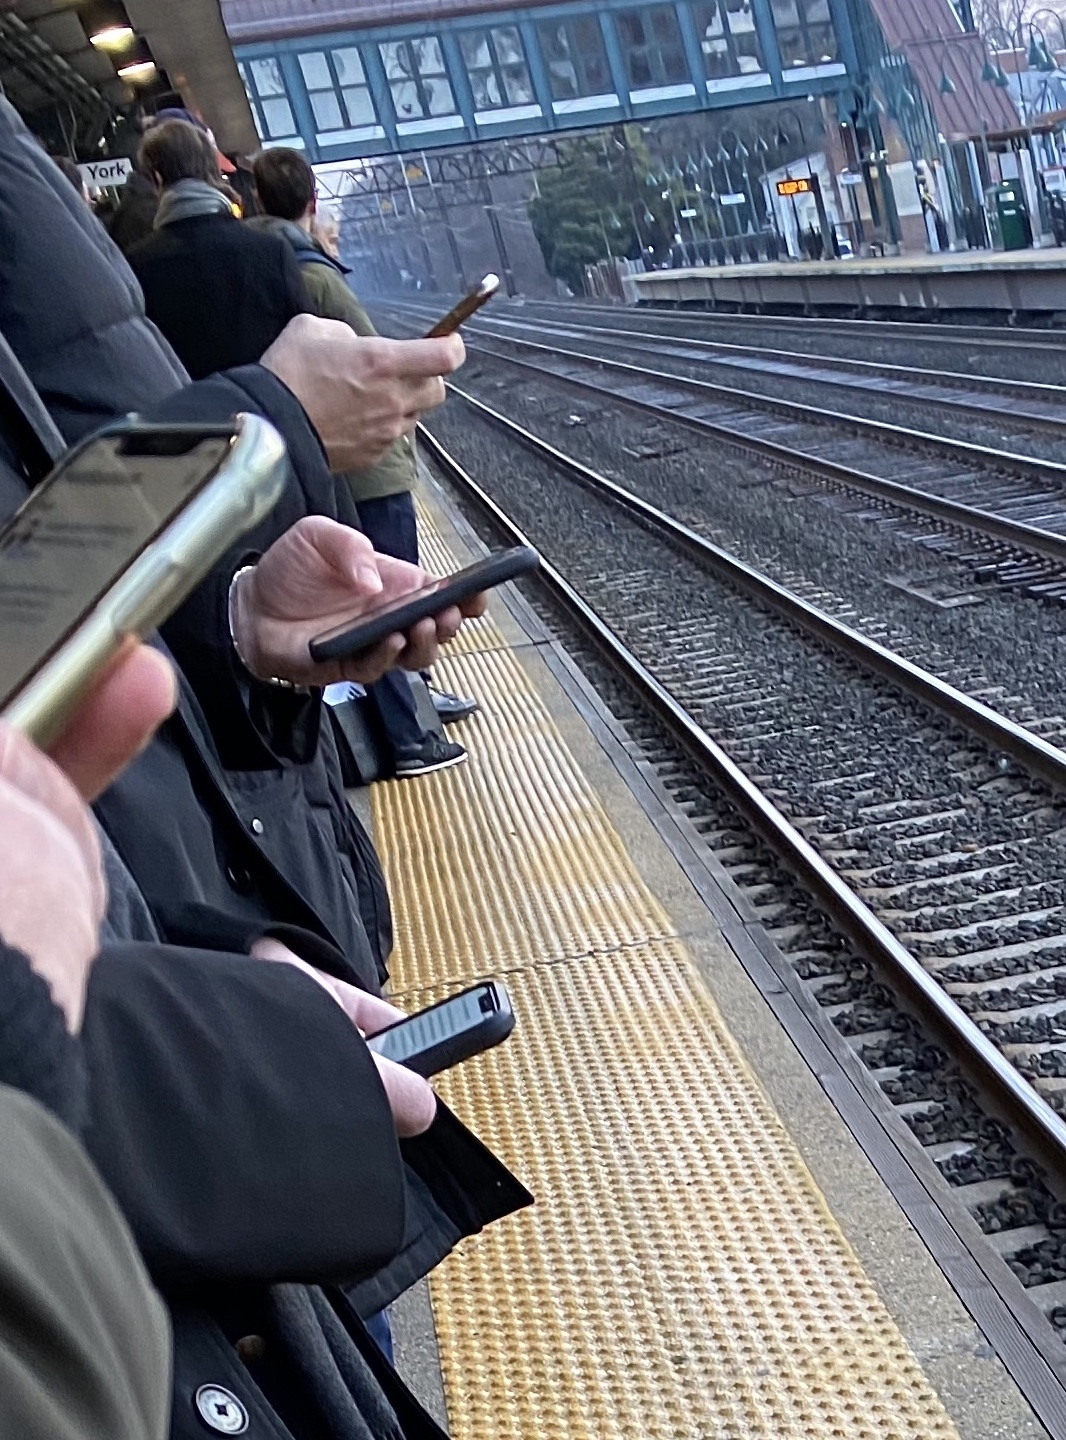 cellphones,train